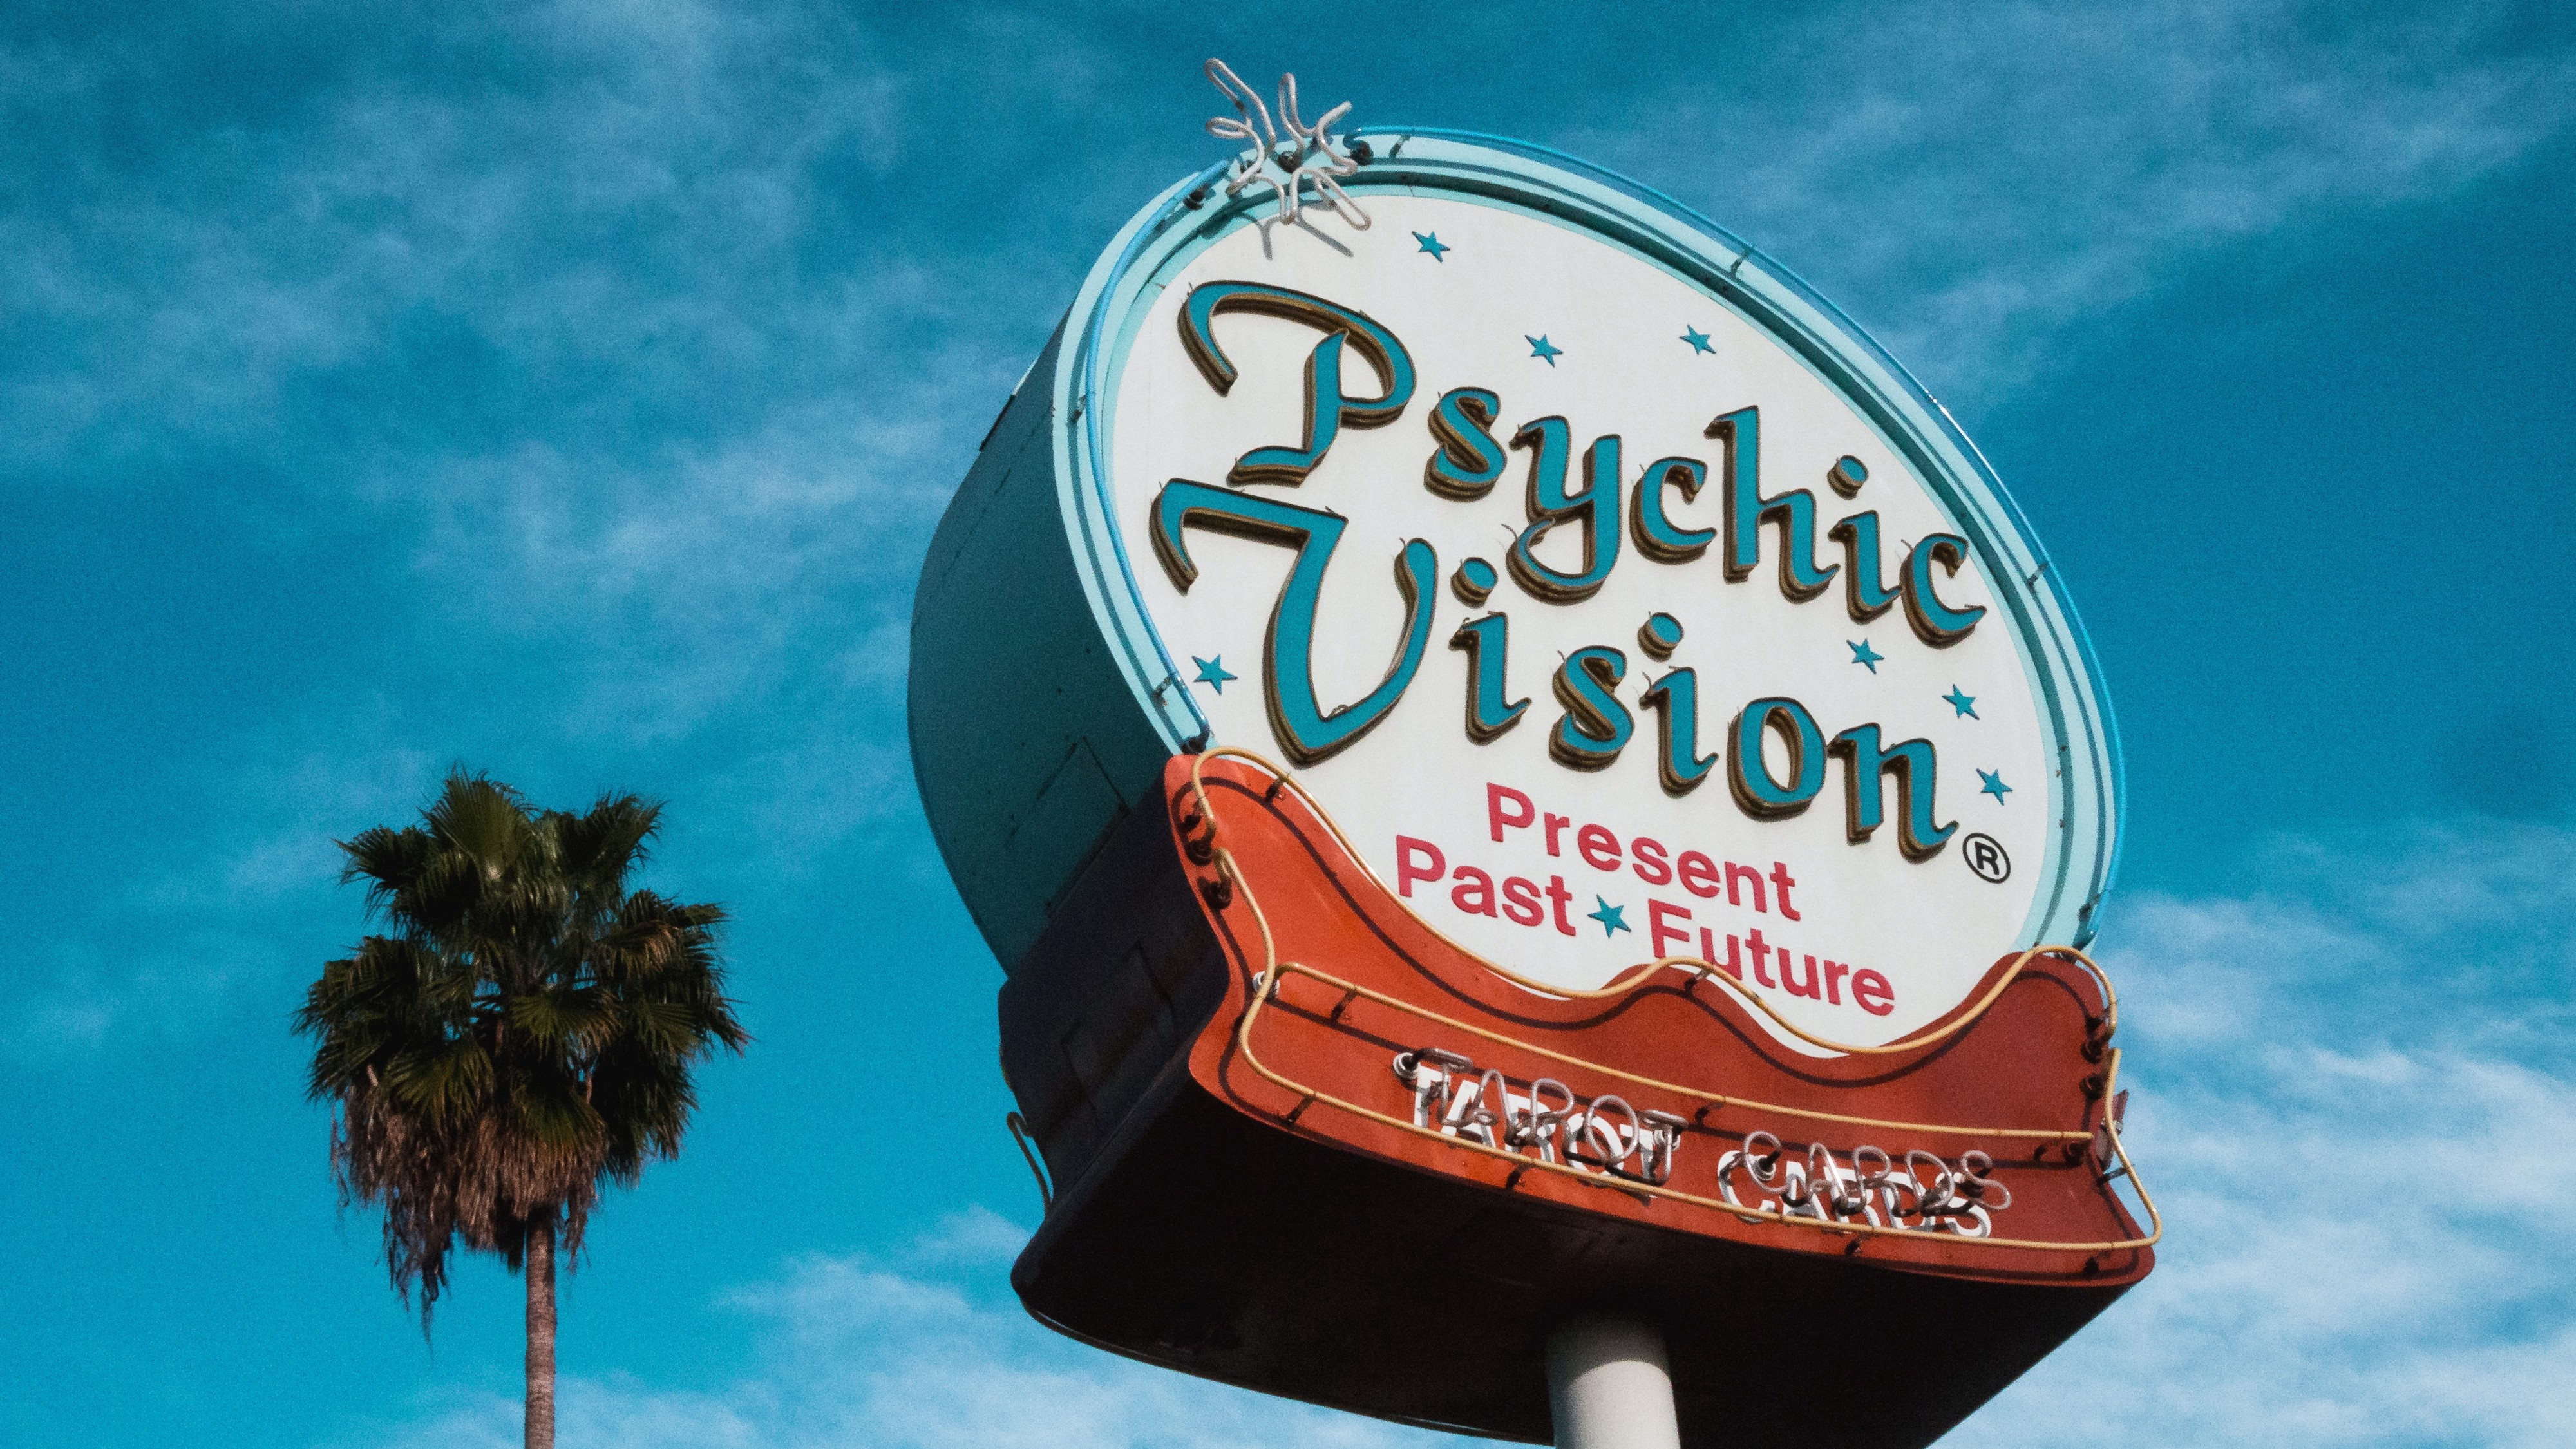 Photo by Wyron A on Unsplash, psychic sign gaudy high in the air